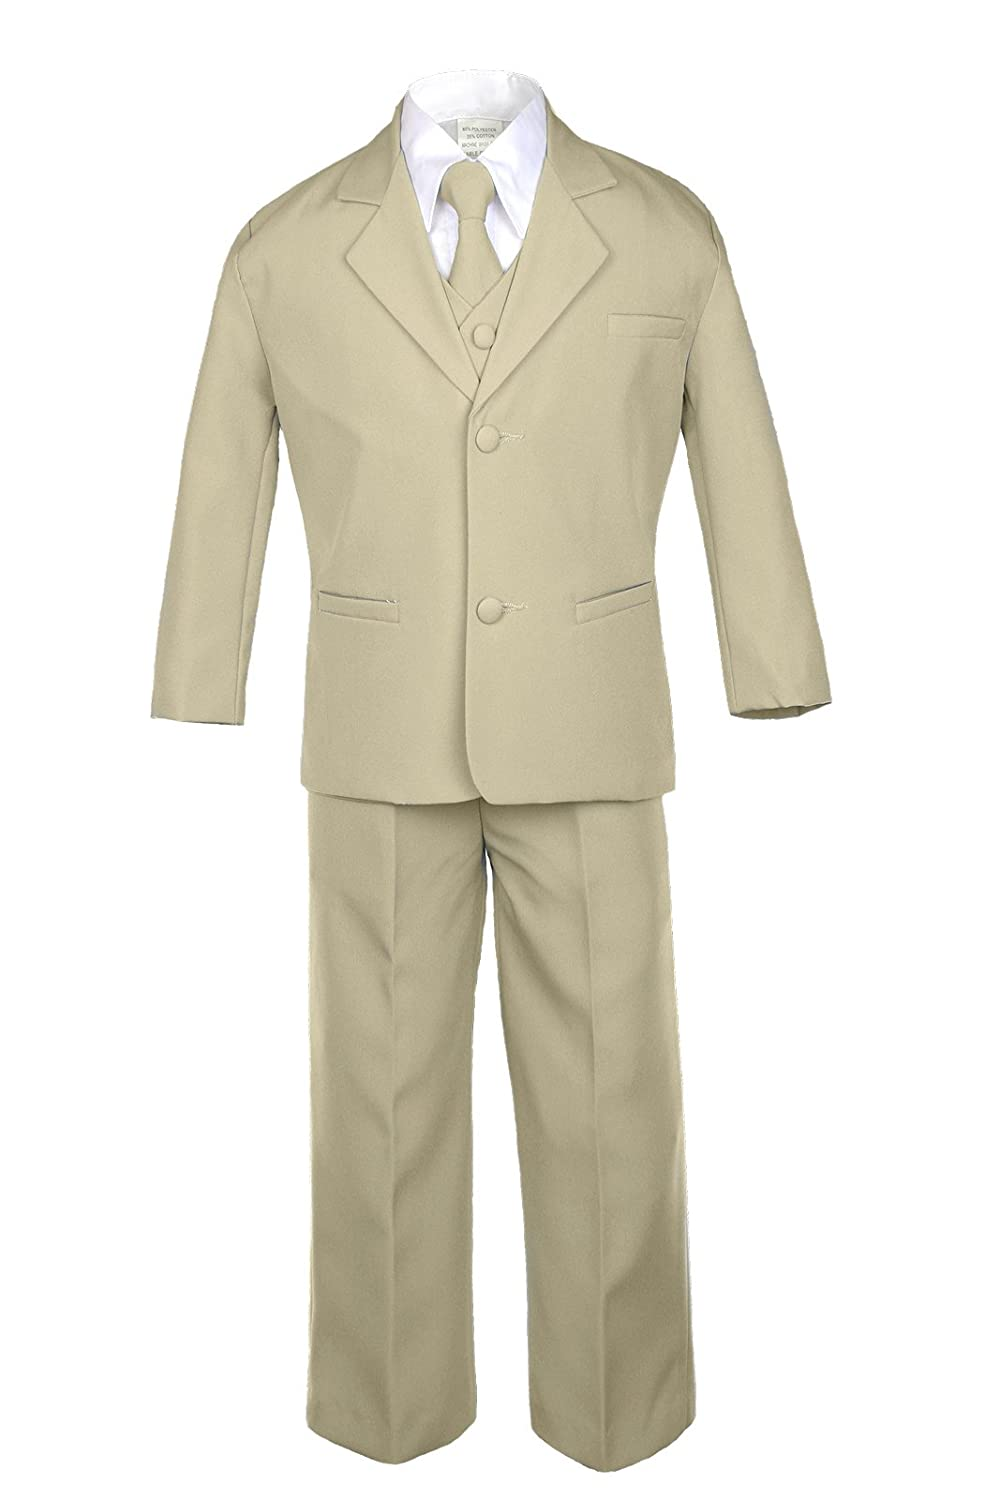 Unotux 6pc Boy Khaki Suits with Satin Turquoise Blue Necktie Outfit Baby to Teen